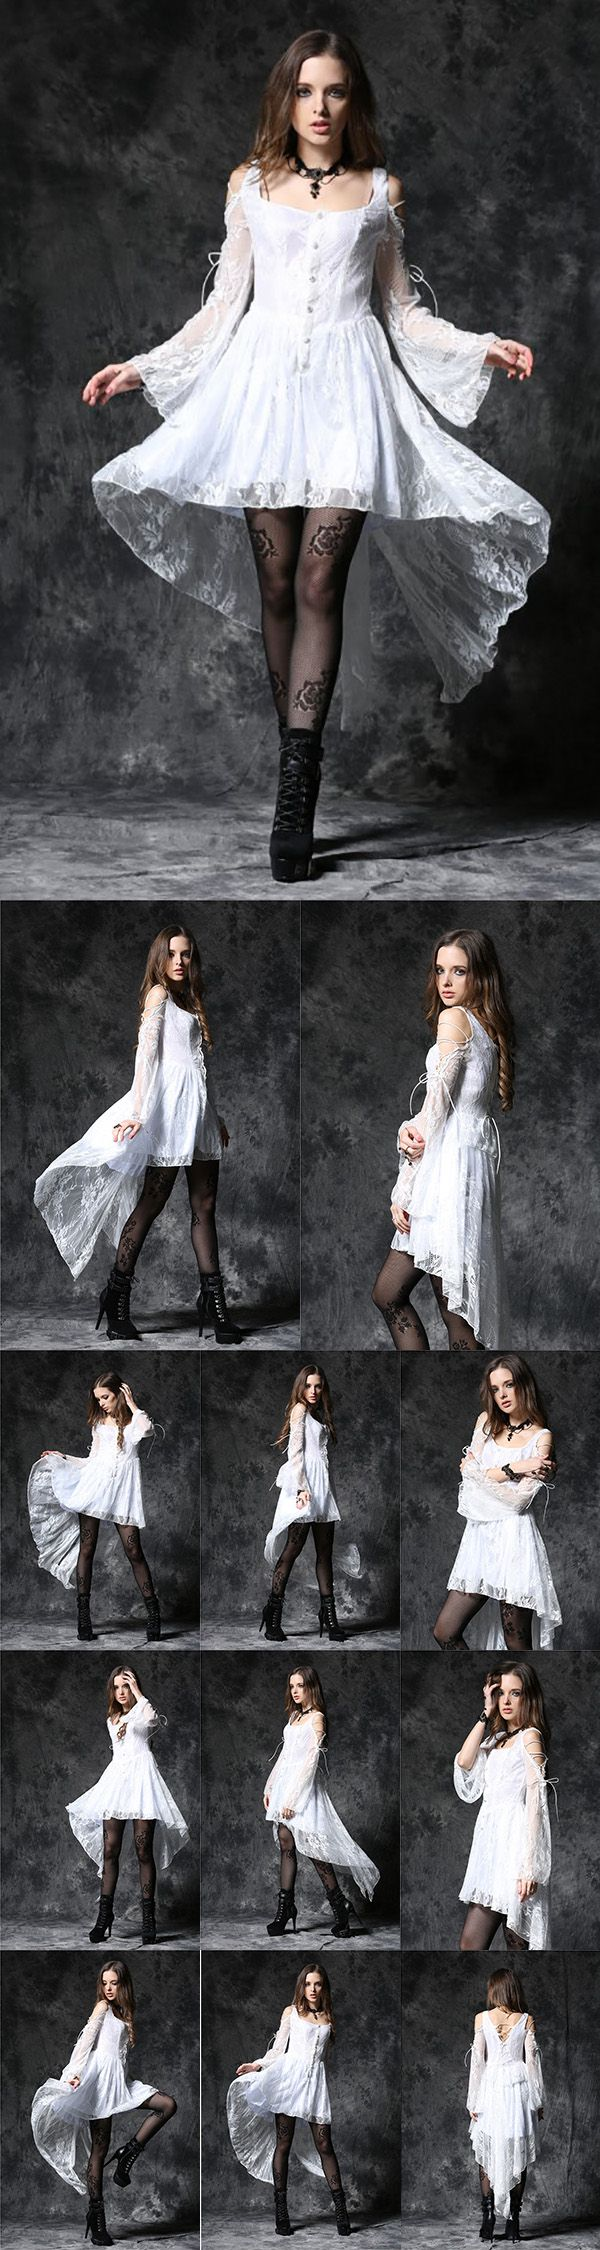 Dark In Love Gothic Ghost Dovetail Lace Dress with Button Front Detail - This is a stunning white lace gothic mini dress. Decorated with a row of white lace covered buttons down the front and long white train at the back. There are shoulder cut outs at the top of the flared sleeves which are laced with white cord. The back of the dress also has corset style cord lacing. Simply stunning addition to any wardrobe. From ANGEL CLOTHING